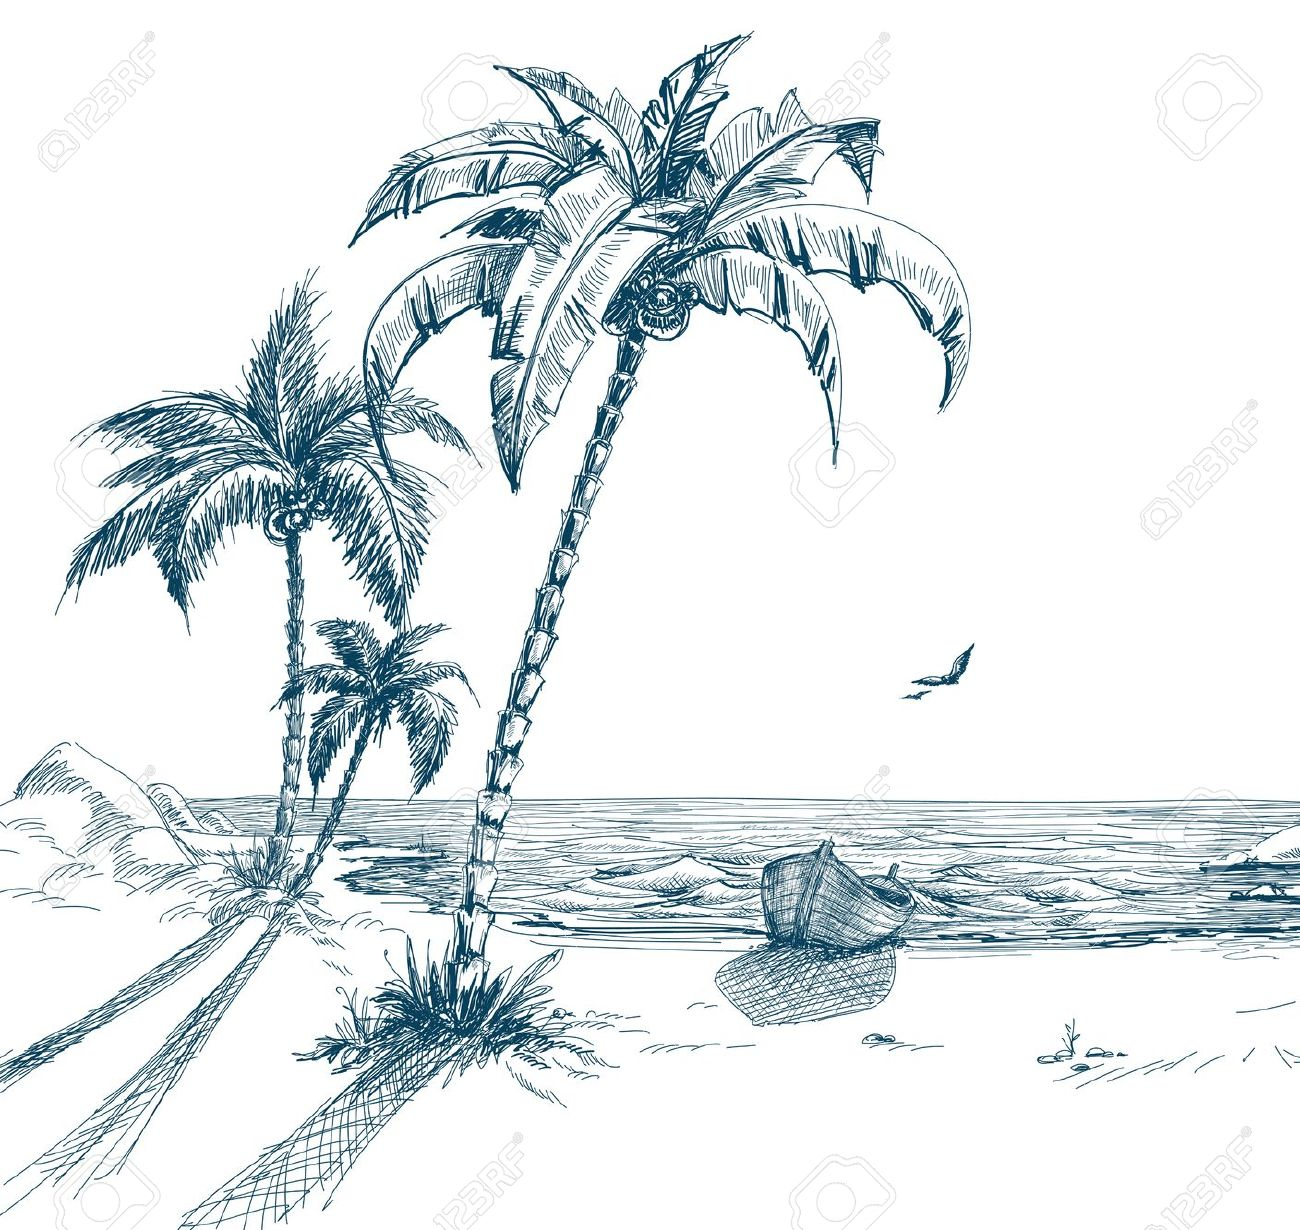 palm tree beach drawing at getdrawings com free for personal use